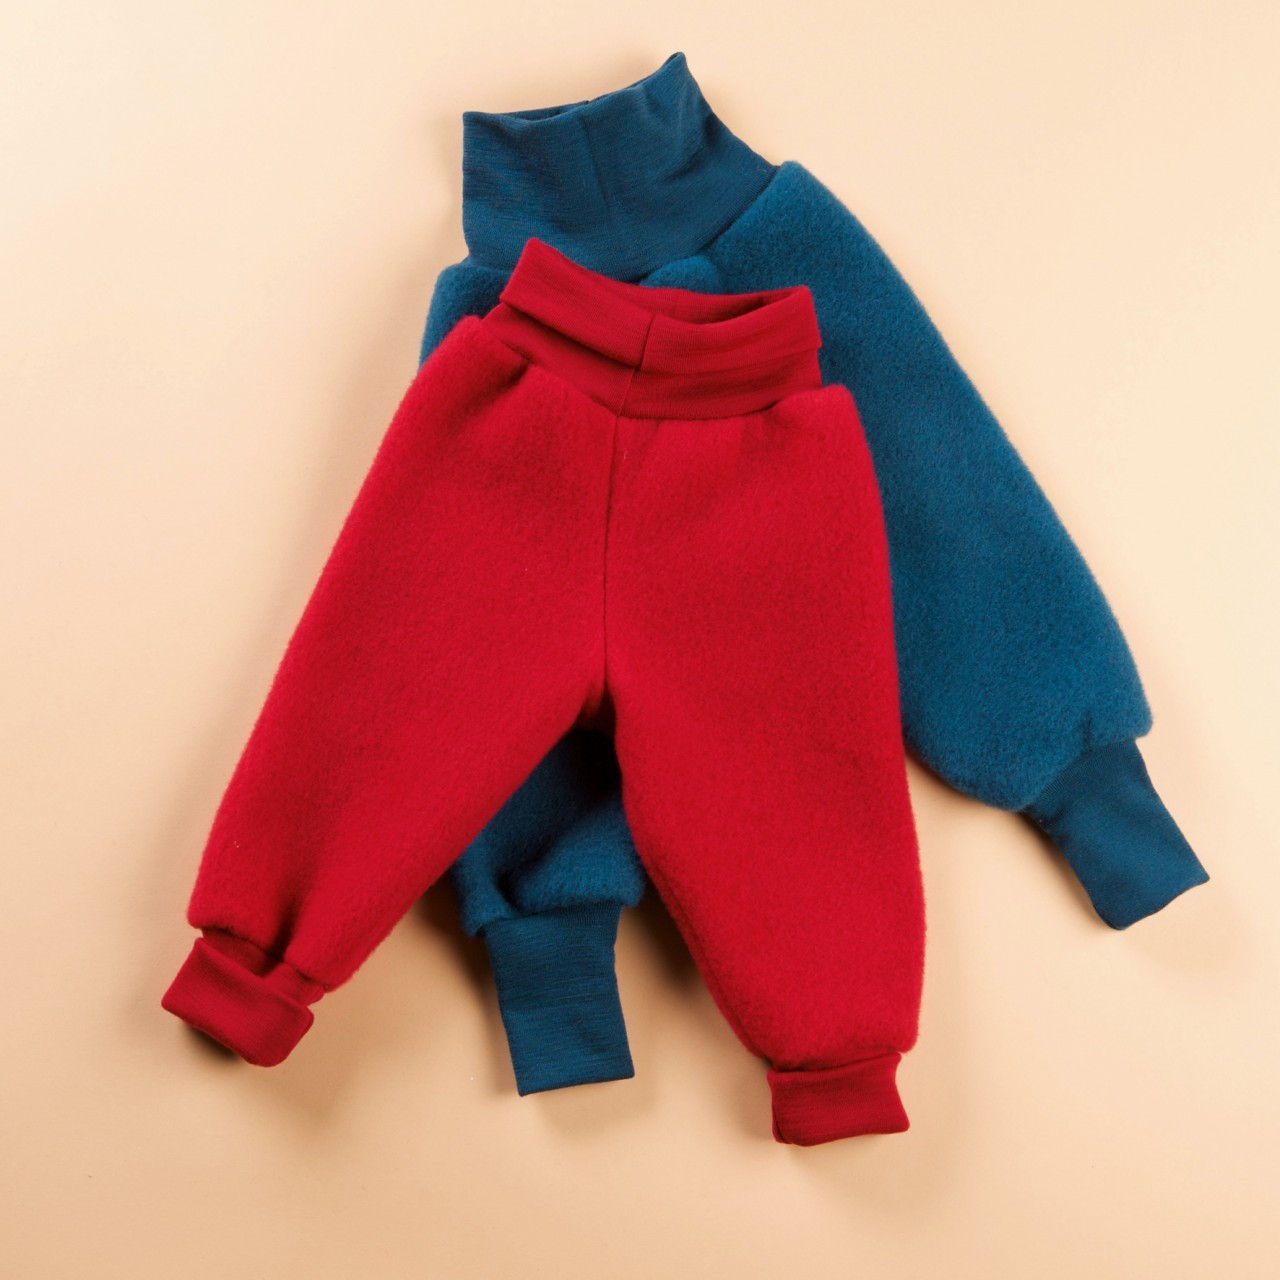 975180d14 Engel Organic Wool Fleece Pants with High Waistband - Little Spruce ...